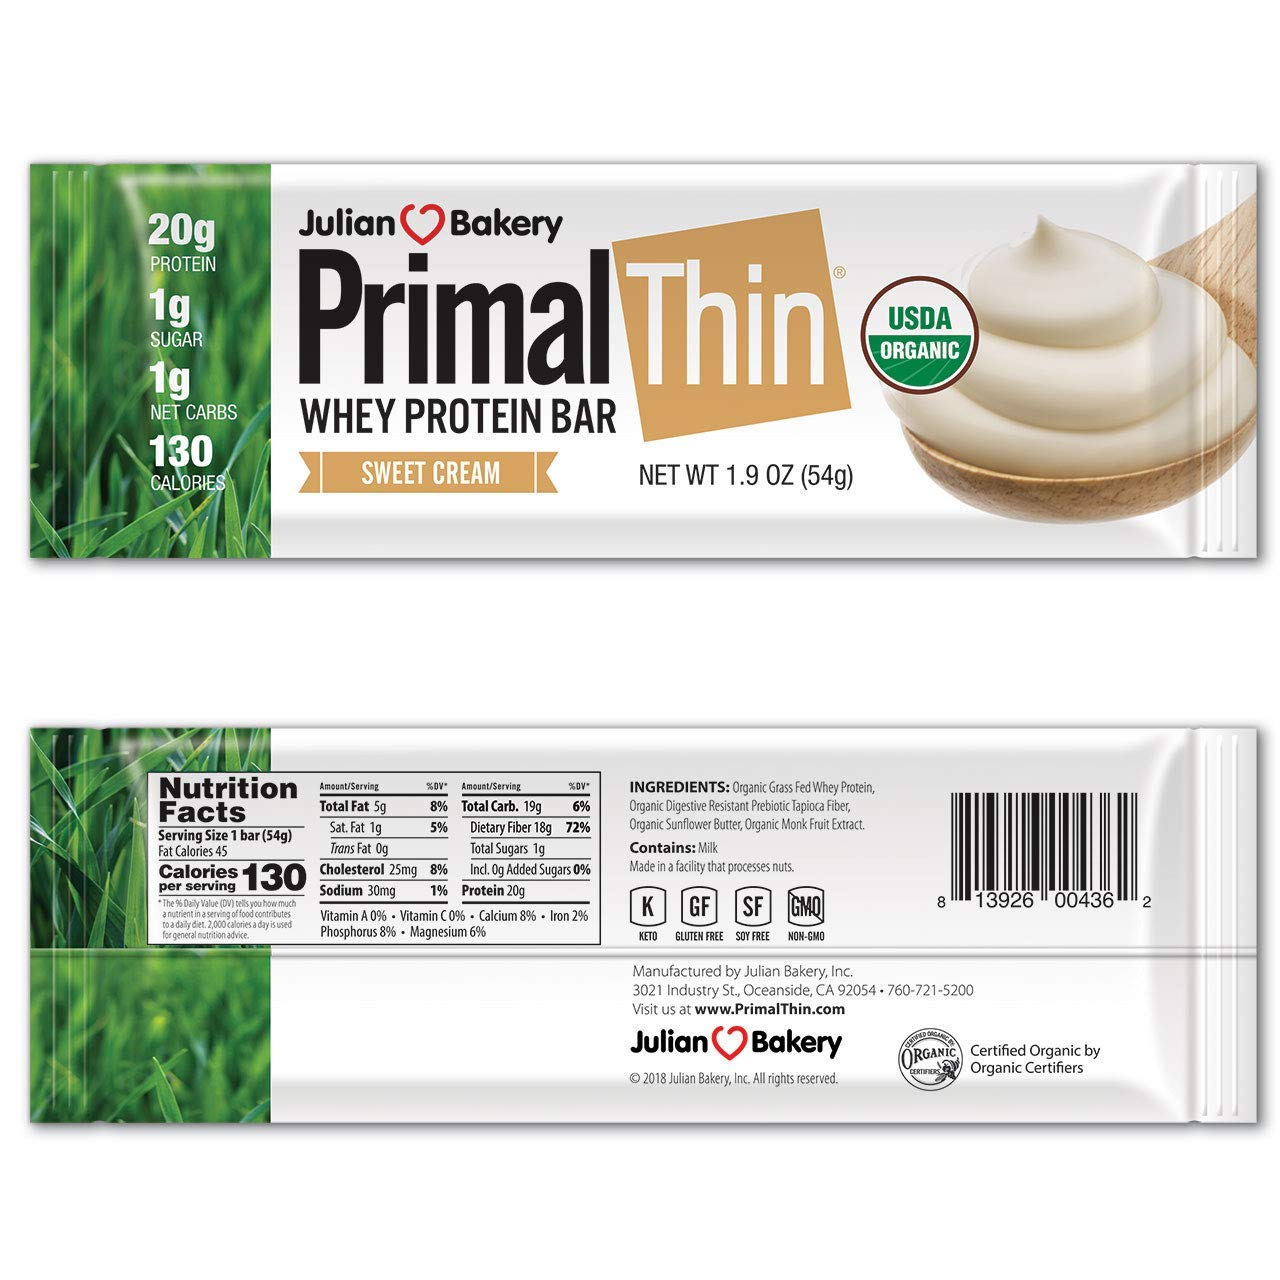 Primal Thin® 20g Protein Bar (Sweet Cream)(Organic Grass Fed Whey) (130 Cal) (1g Sugar) (1 Net Carb) (Gluten-Free) (10 Bars) by Julian Bakery